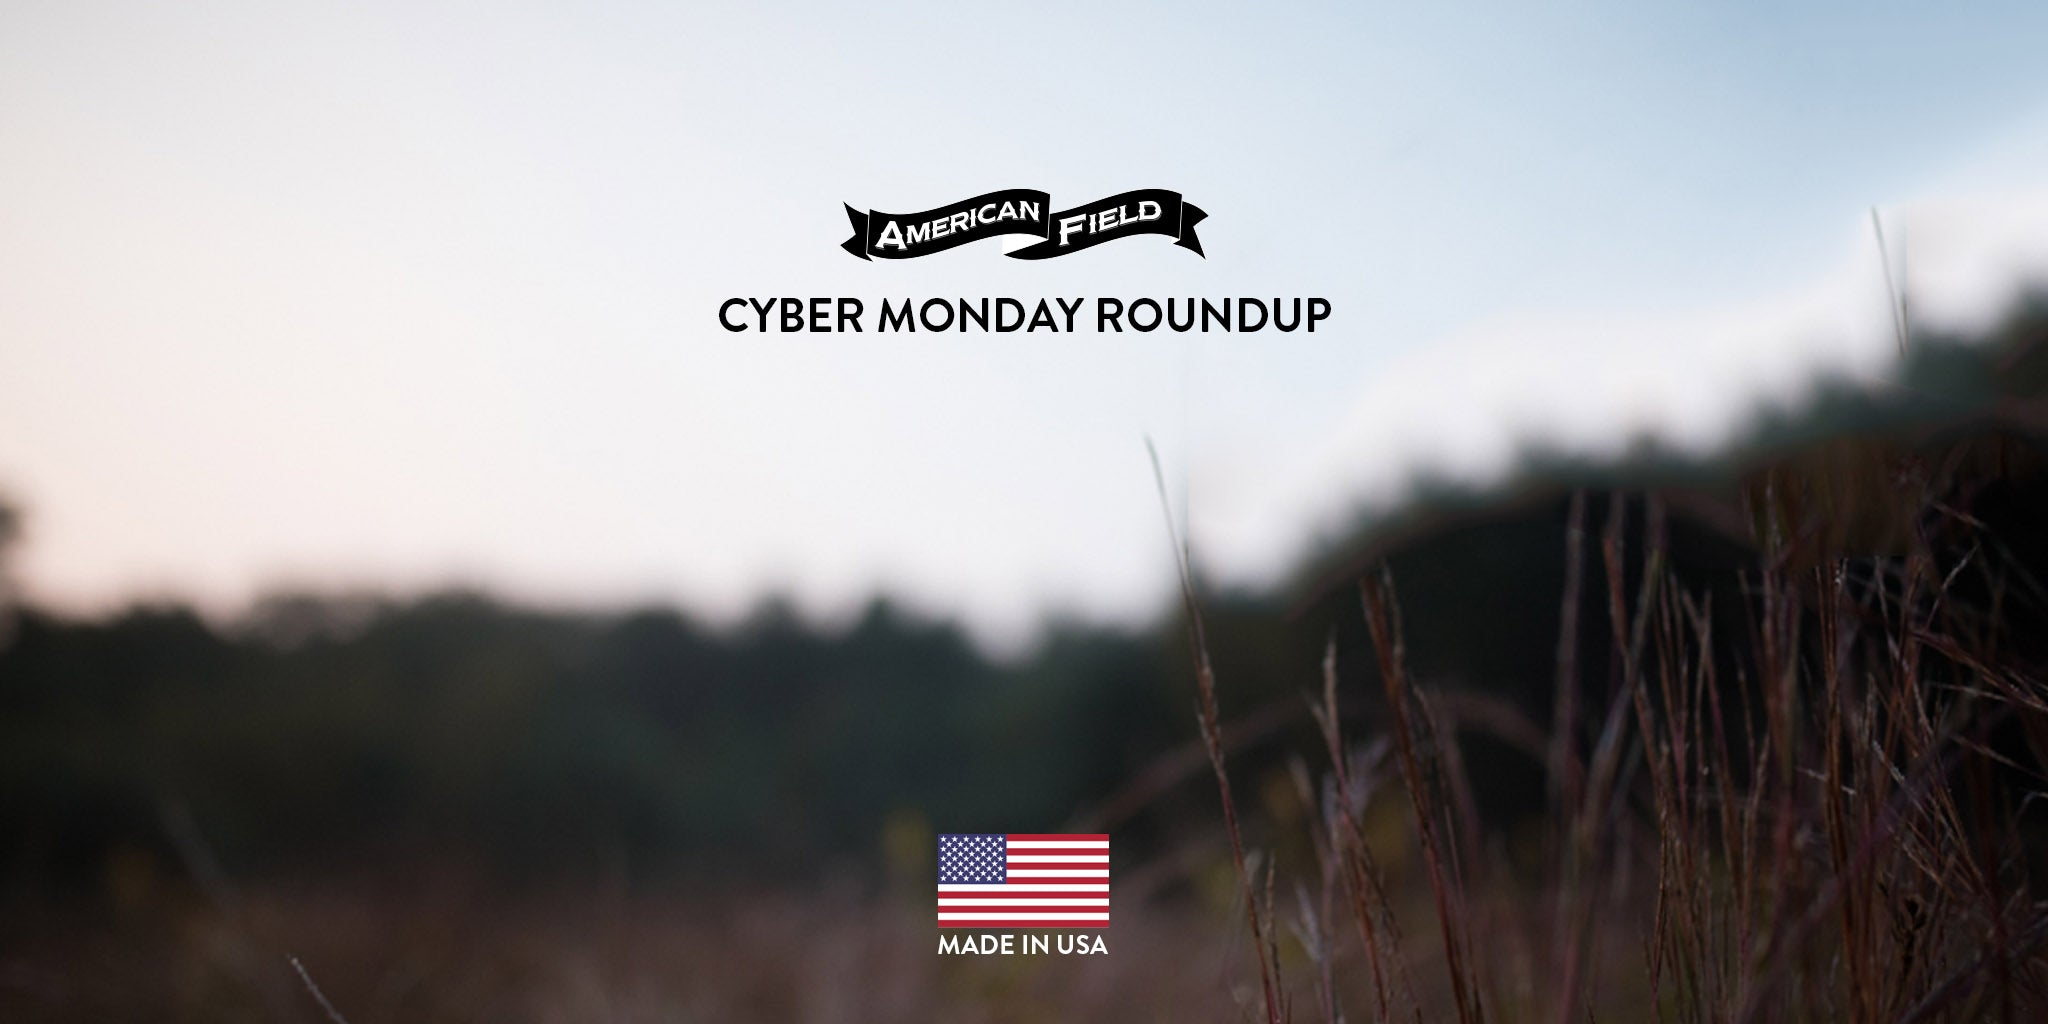 Our Cyber Monday Roundup